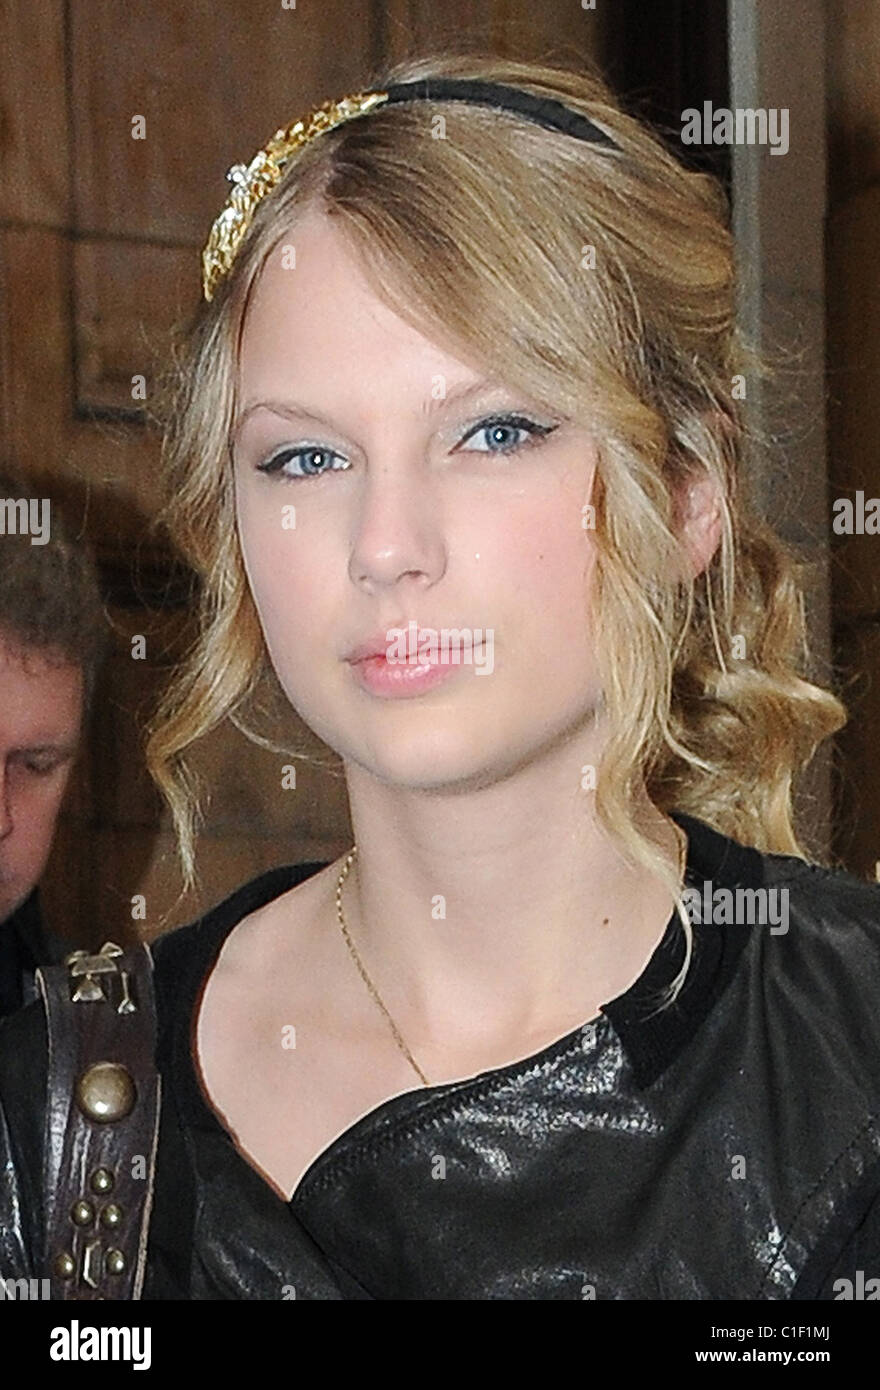 Eye Contact Taylor Swift 040509 High Resolution Stock Photography And Images Alamy